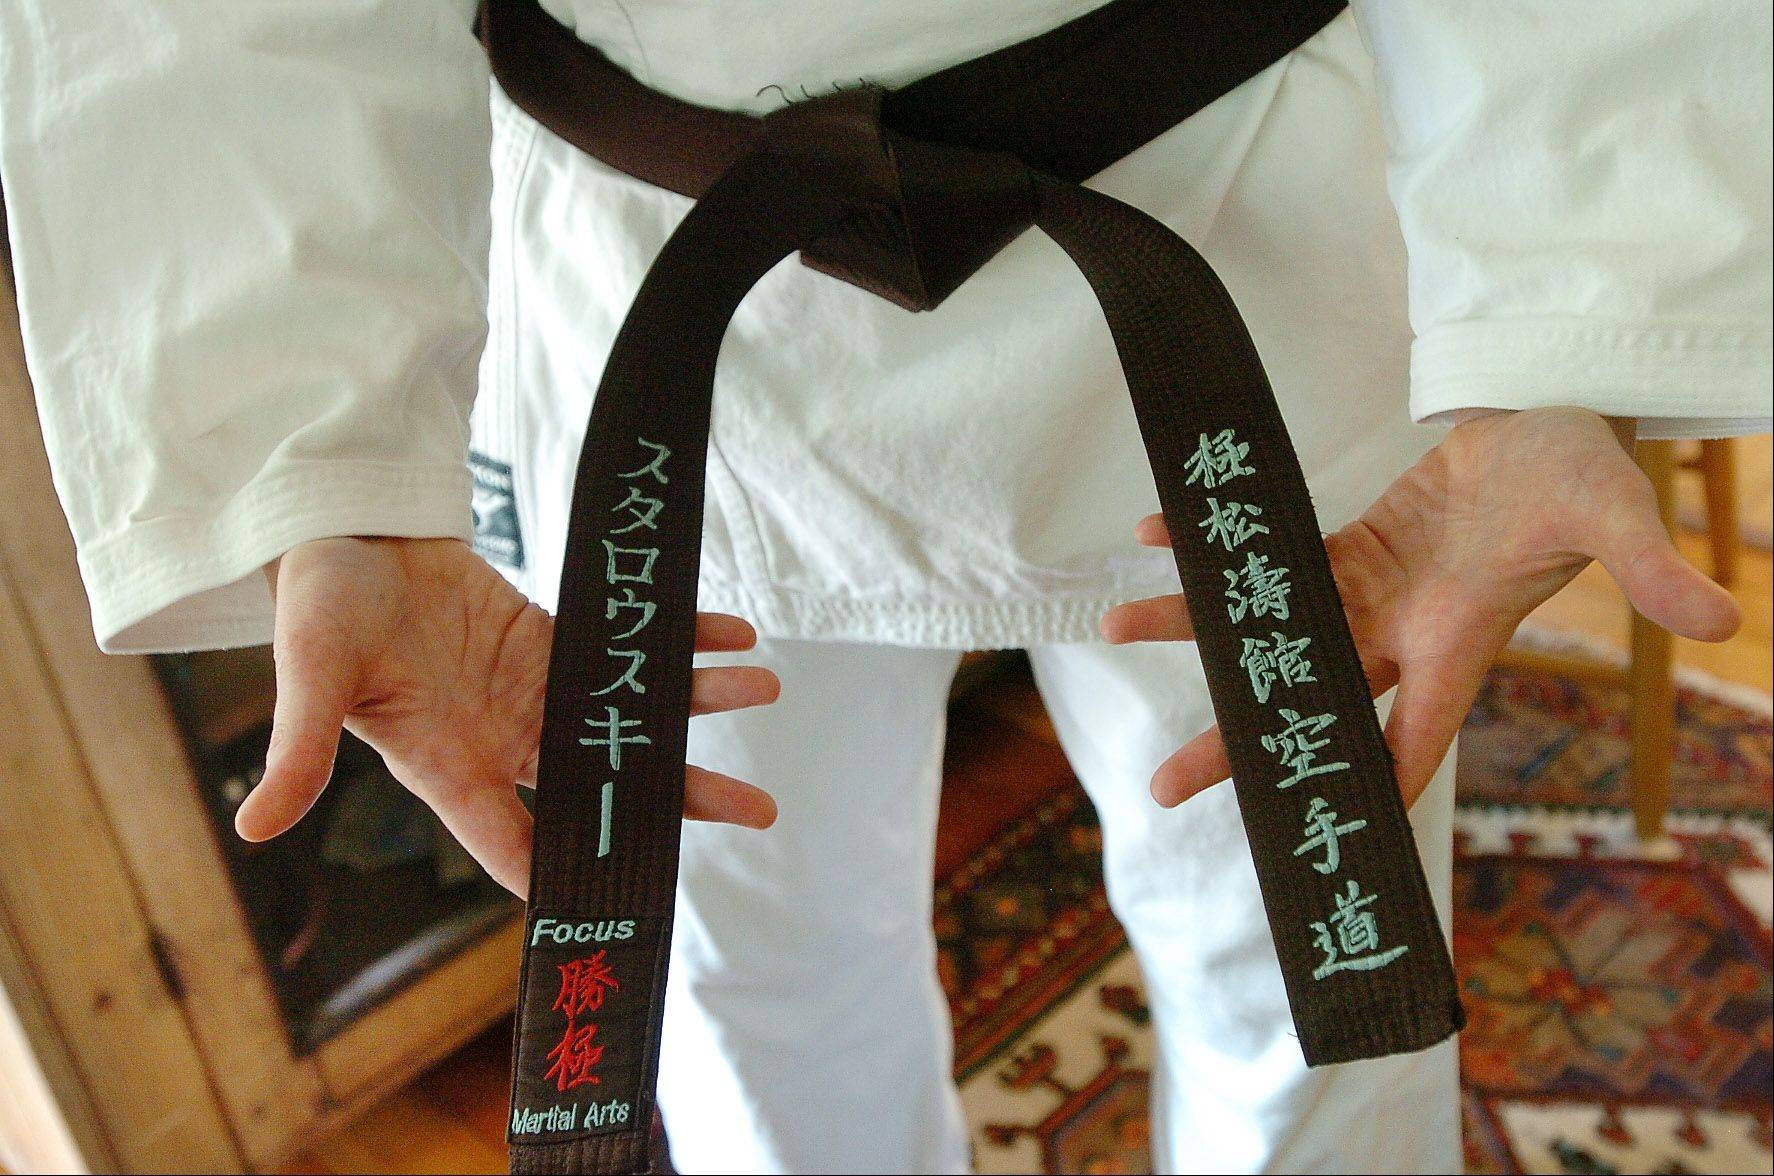 This is Belle Staurowsky's black belt in karate. She trains at Focus Martial Arts & Fitness in Lake in the Hills.